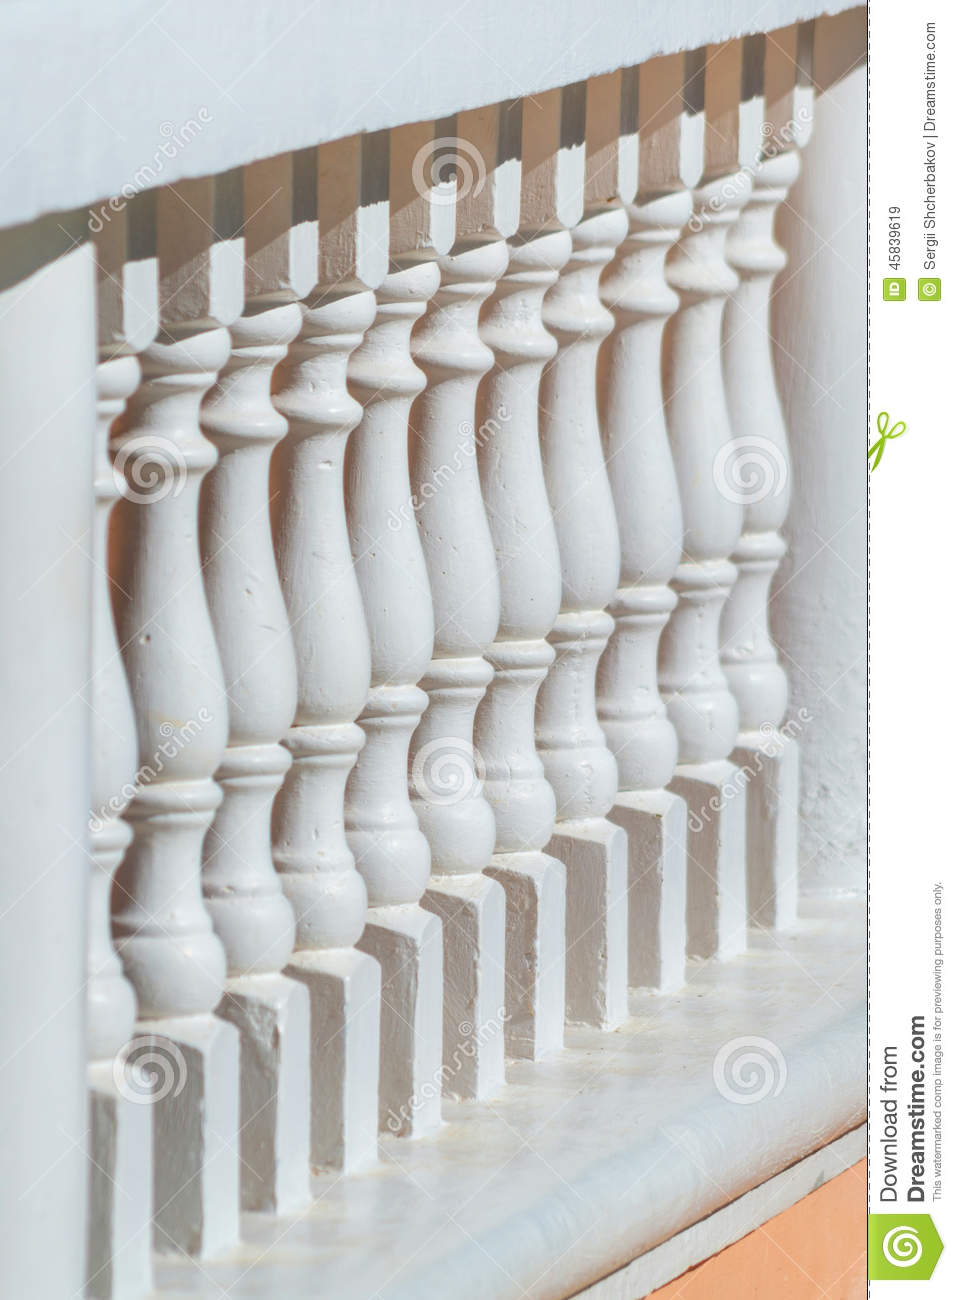 balustrade de style ancien barri re de balcon photo stock image 45839619. Black Bedroom Furniture Sets. Home Design Ideas